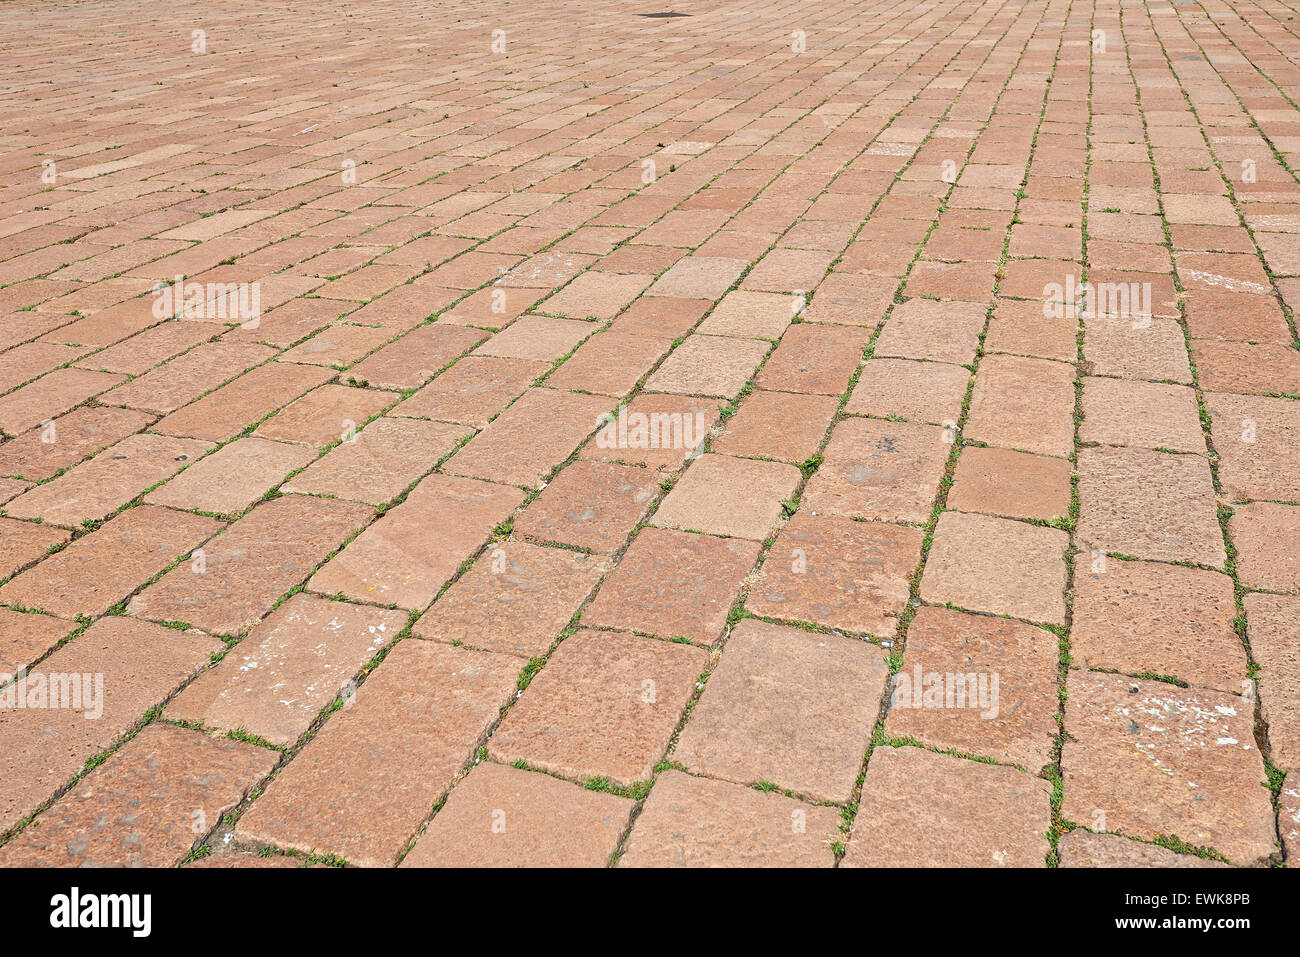 grass paving pattern surface stockfotos grass paving pattern surface bilder alamy. Black Bedroom Furniture Sets. Home Design Ideas